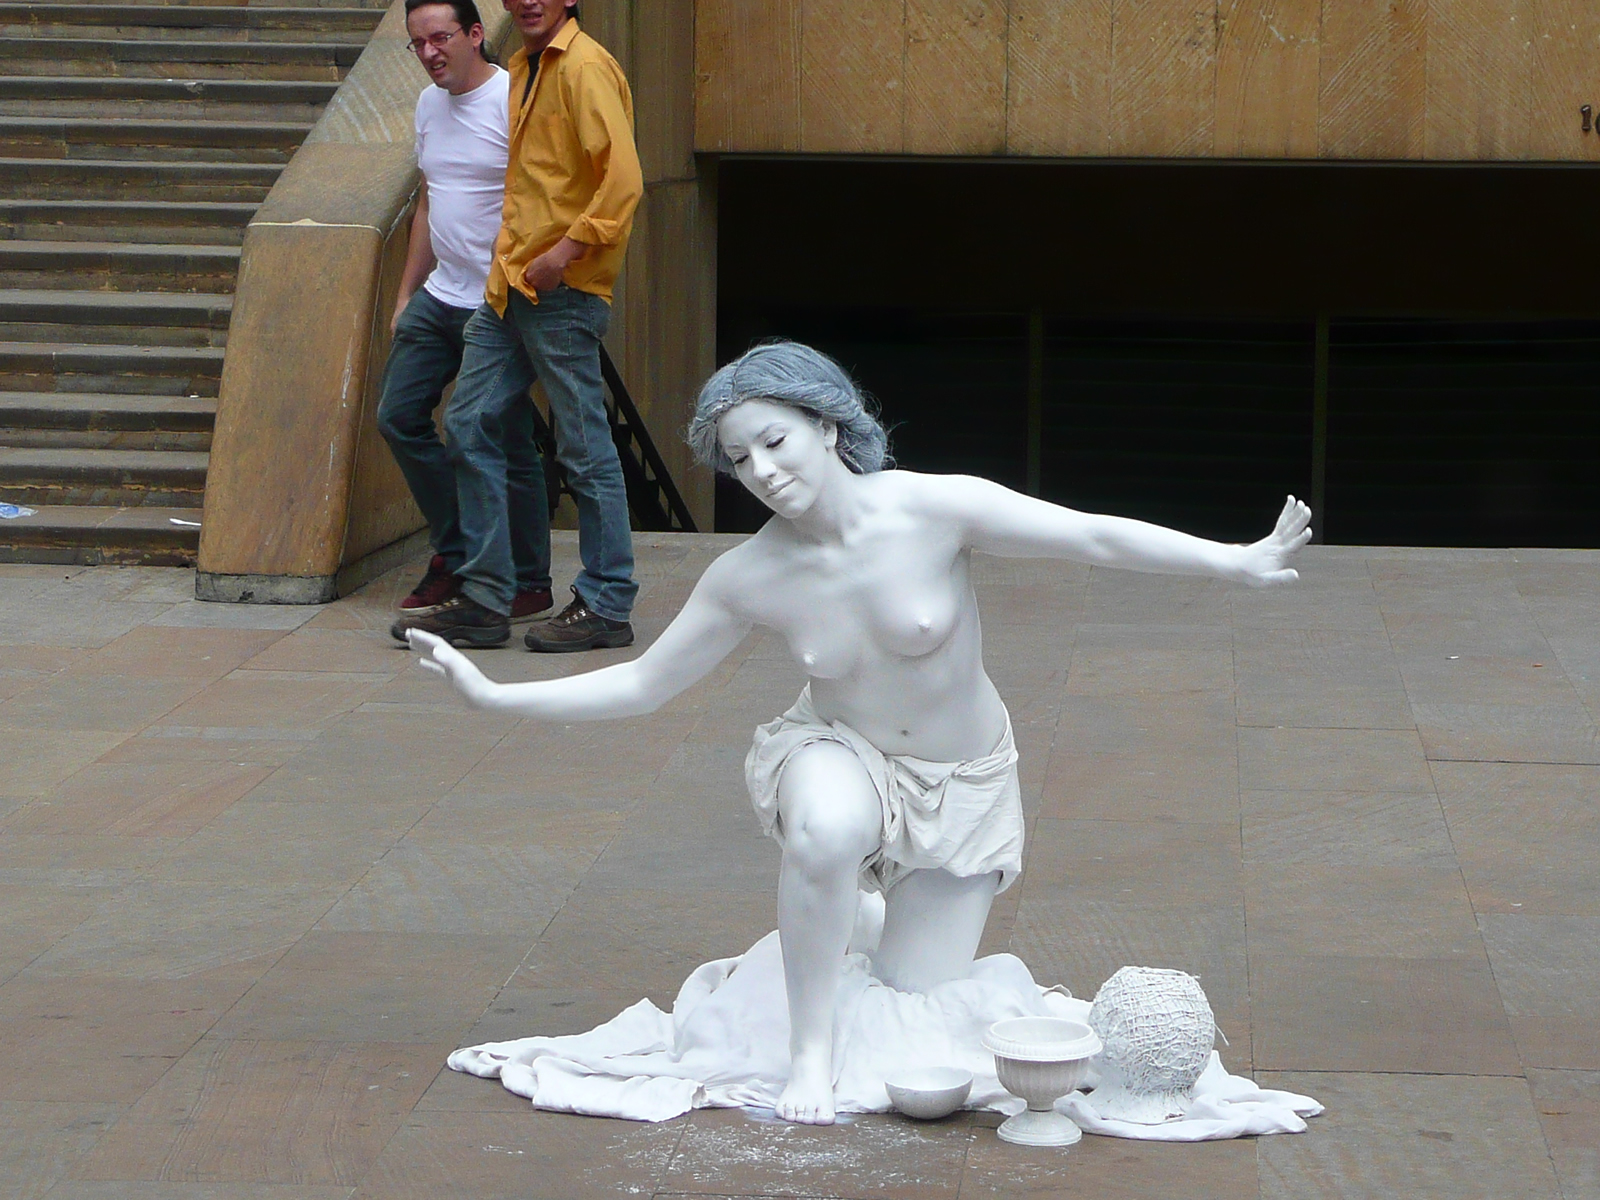 Topless living statue